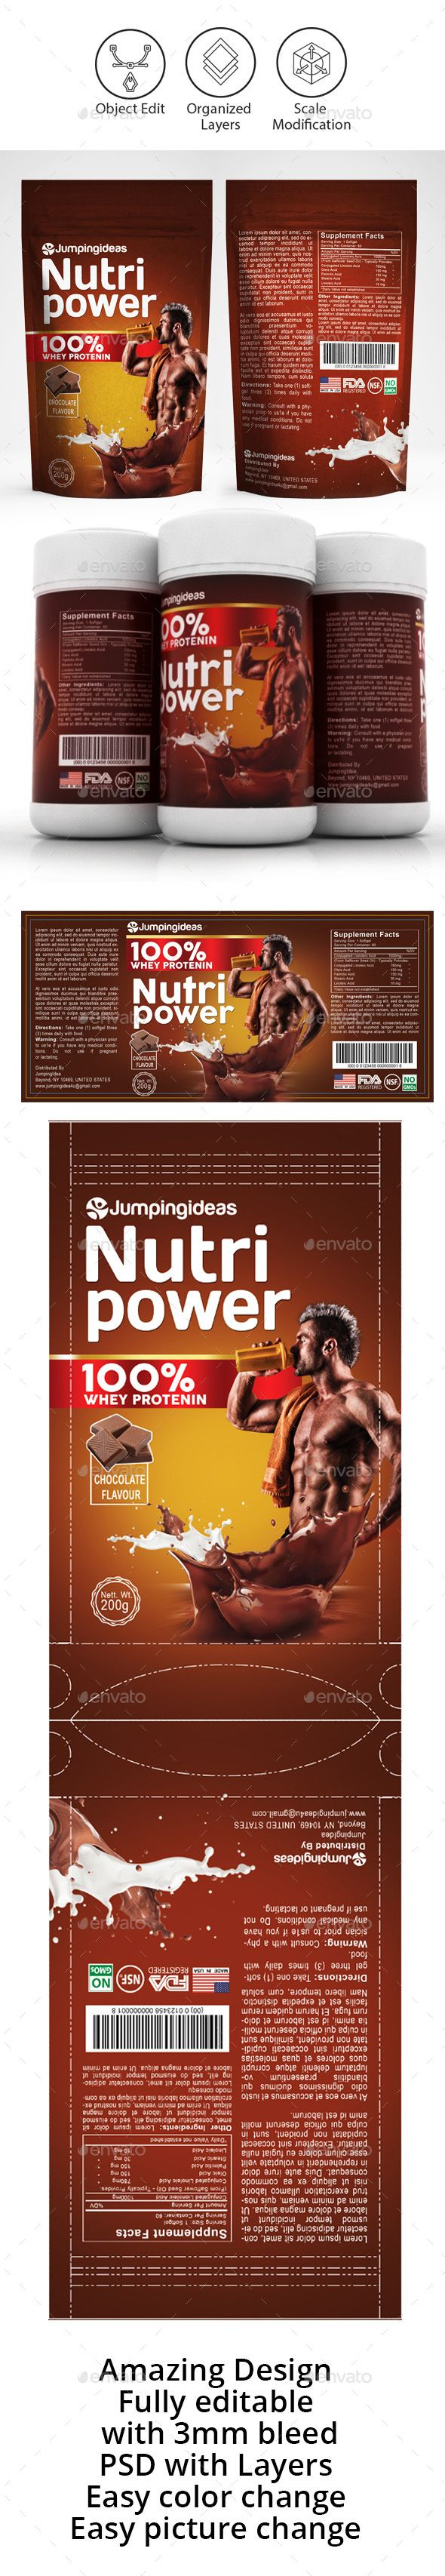 Protein Shake Label Design Template - Packaging Print Templates PSD. Download here: https://graphicriver.net/item/protein-shake-label-template/17034607?s_rank=56&ref=yinkira